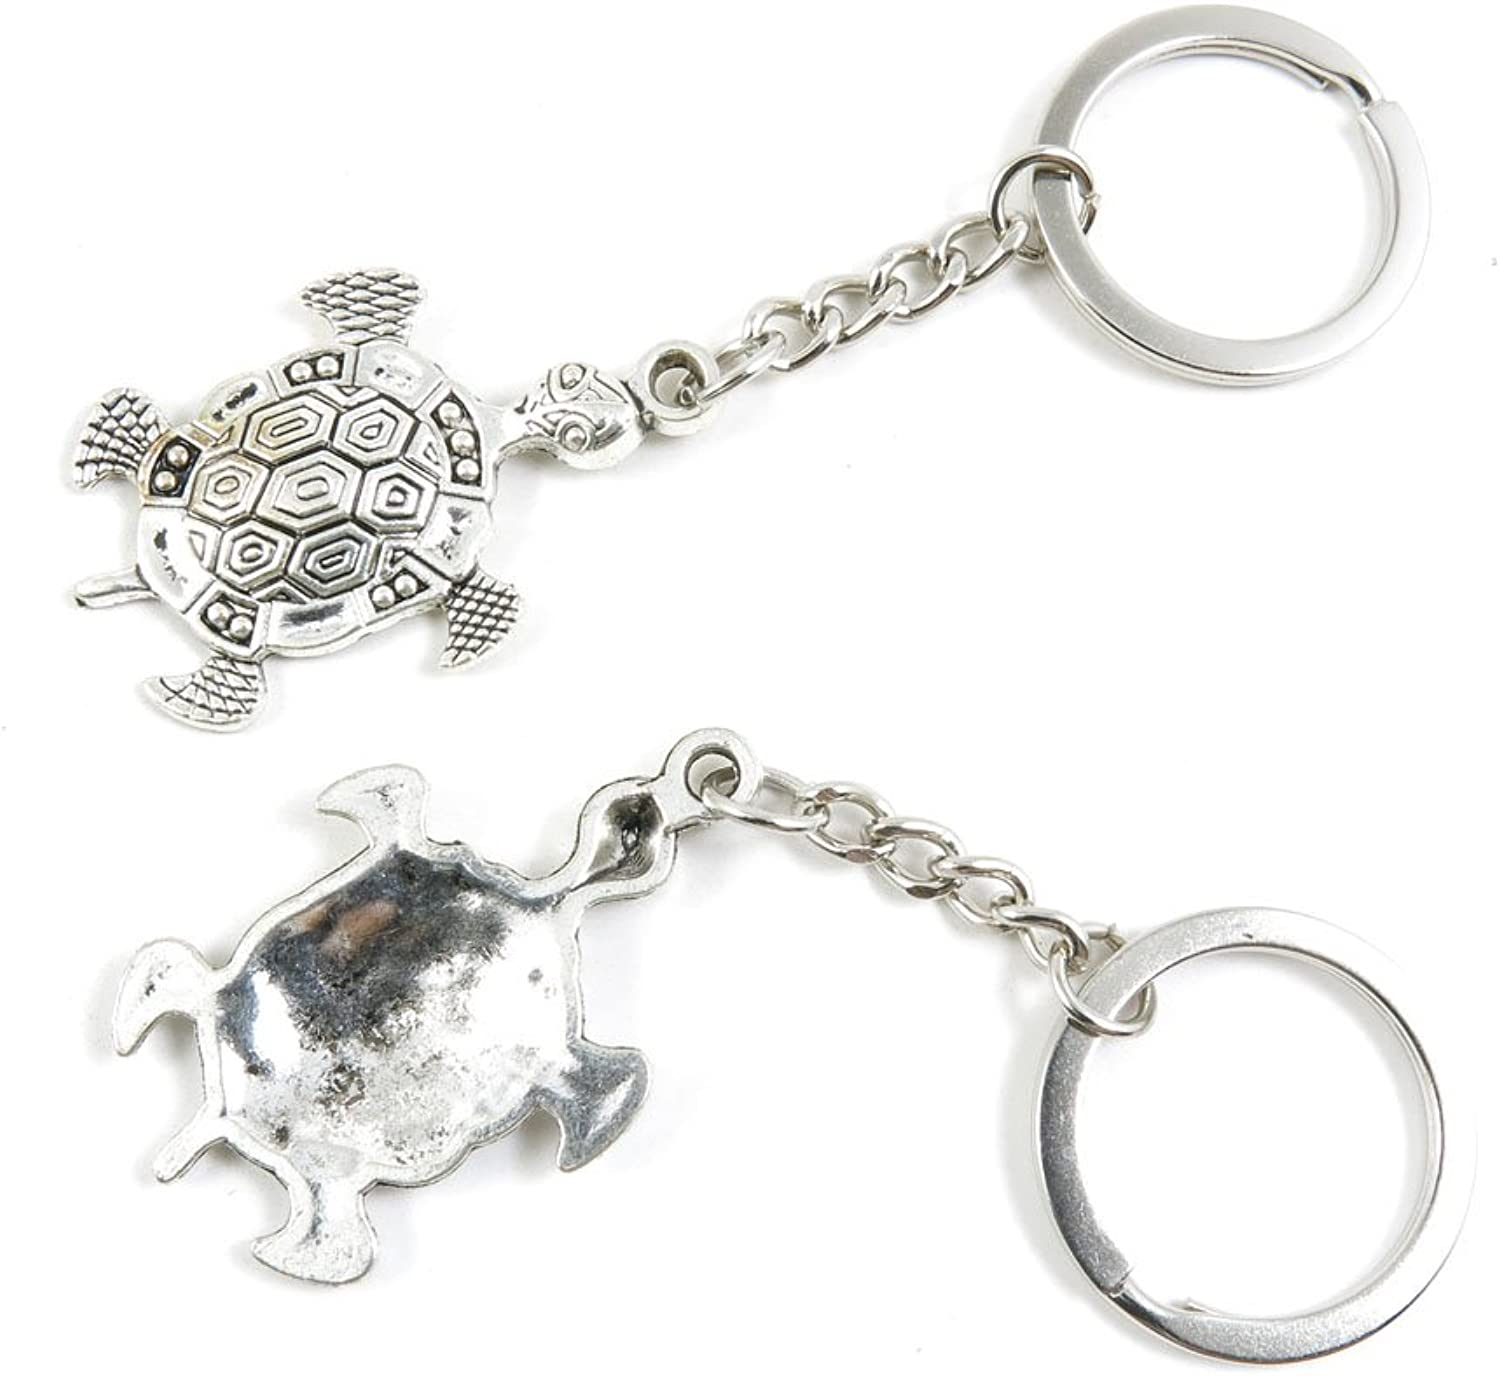 100 Pieces Keychain Keyring Door Car Key Chain Ring Tag Charms Bulk Supply Jewelry Making Clasp Findings M1ES7U Tortoise Turtle